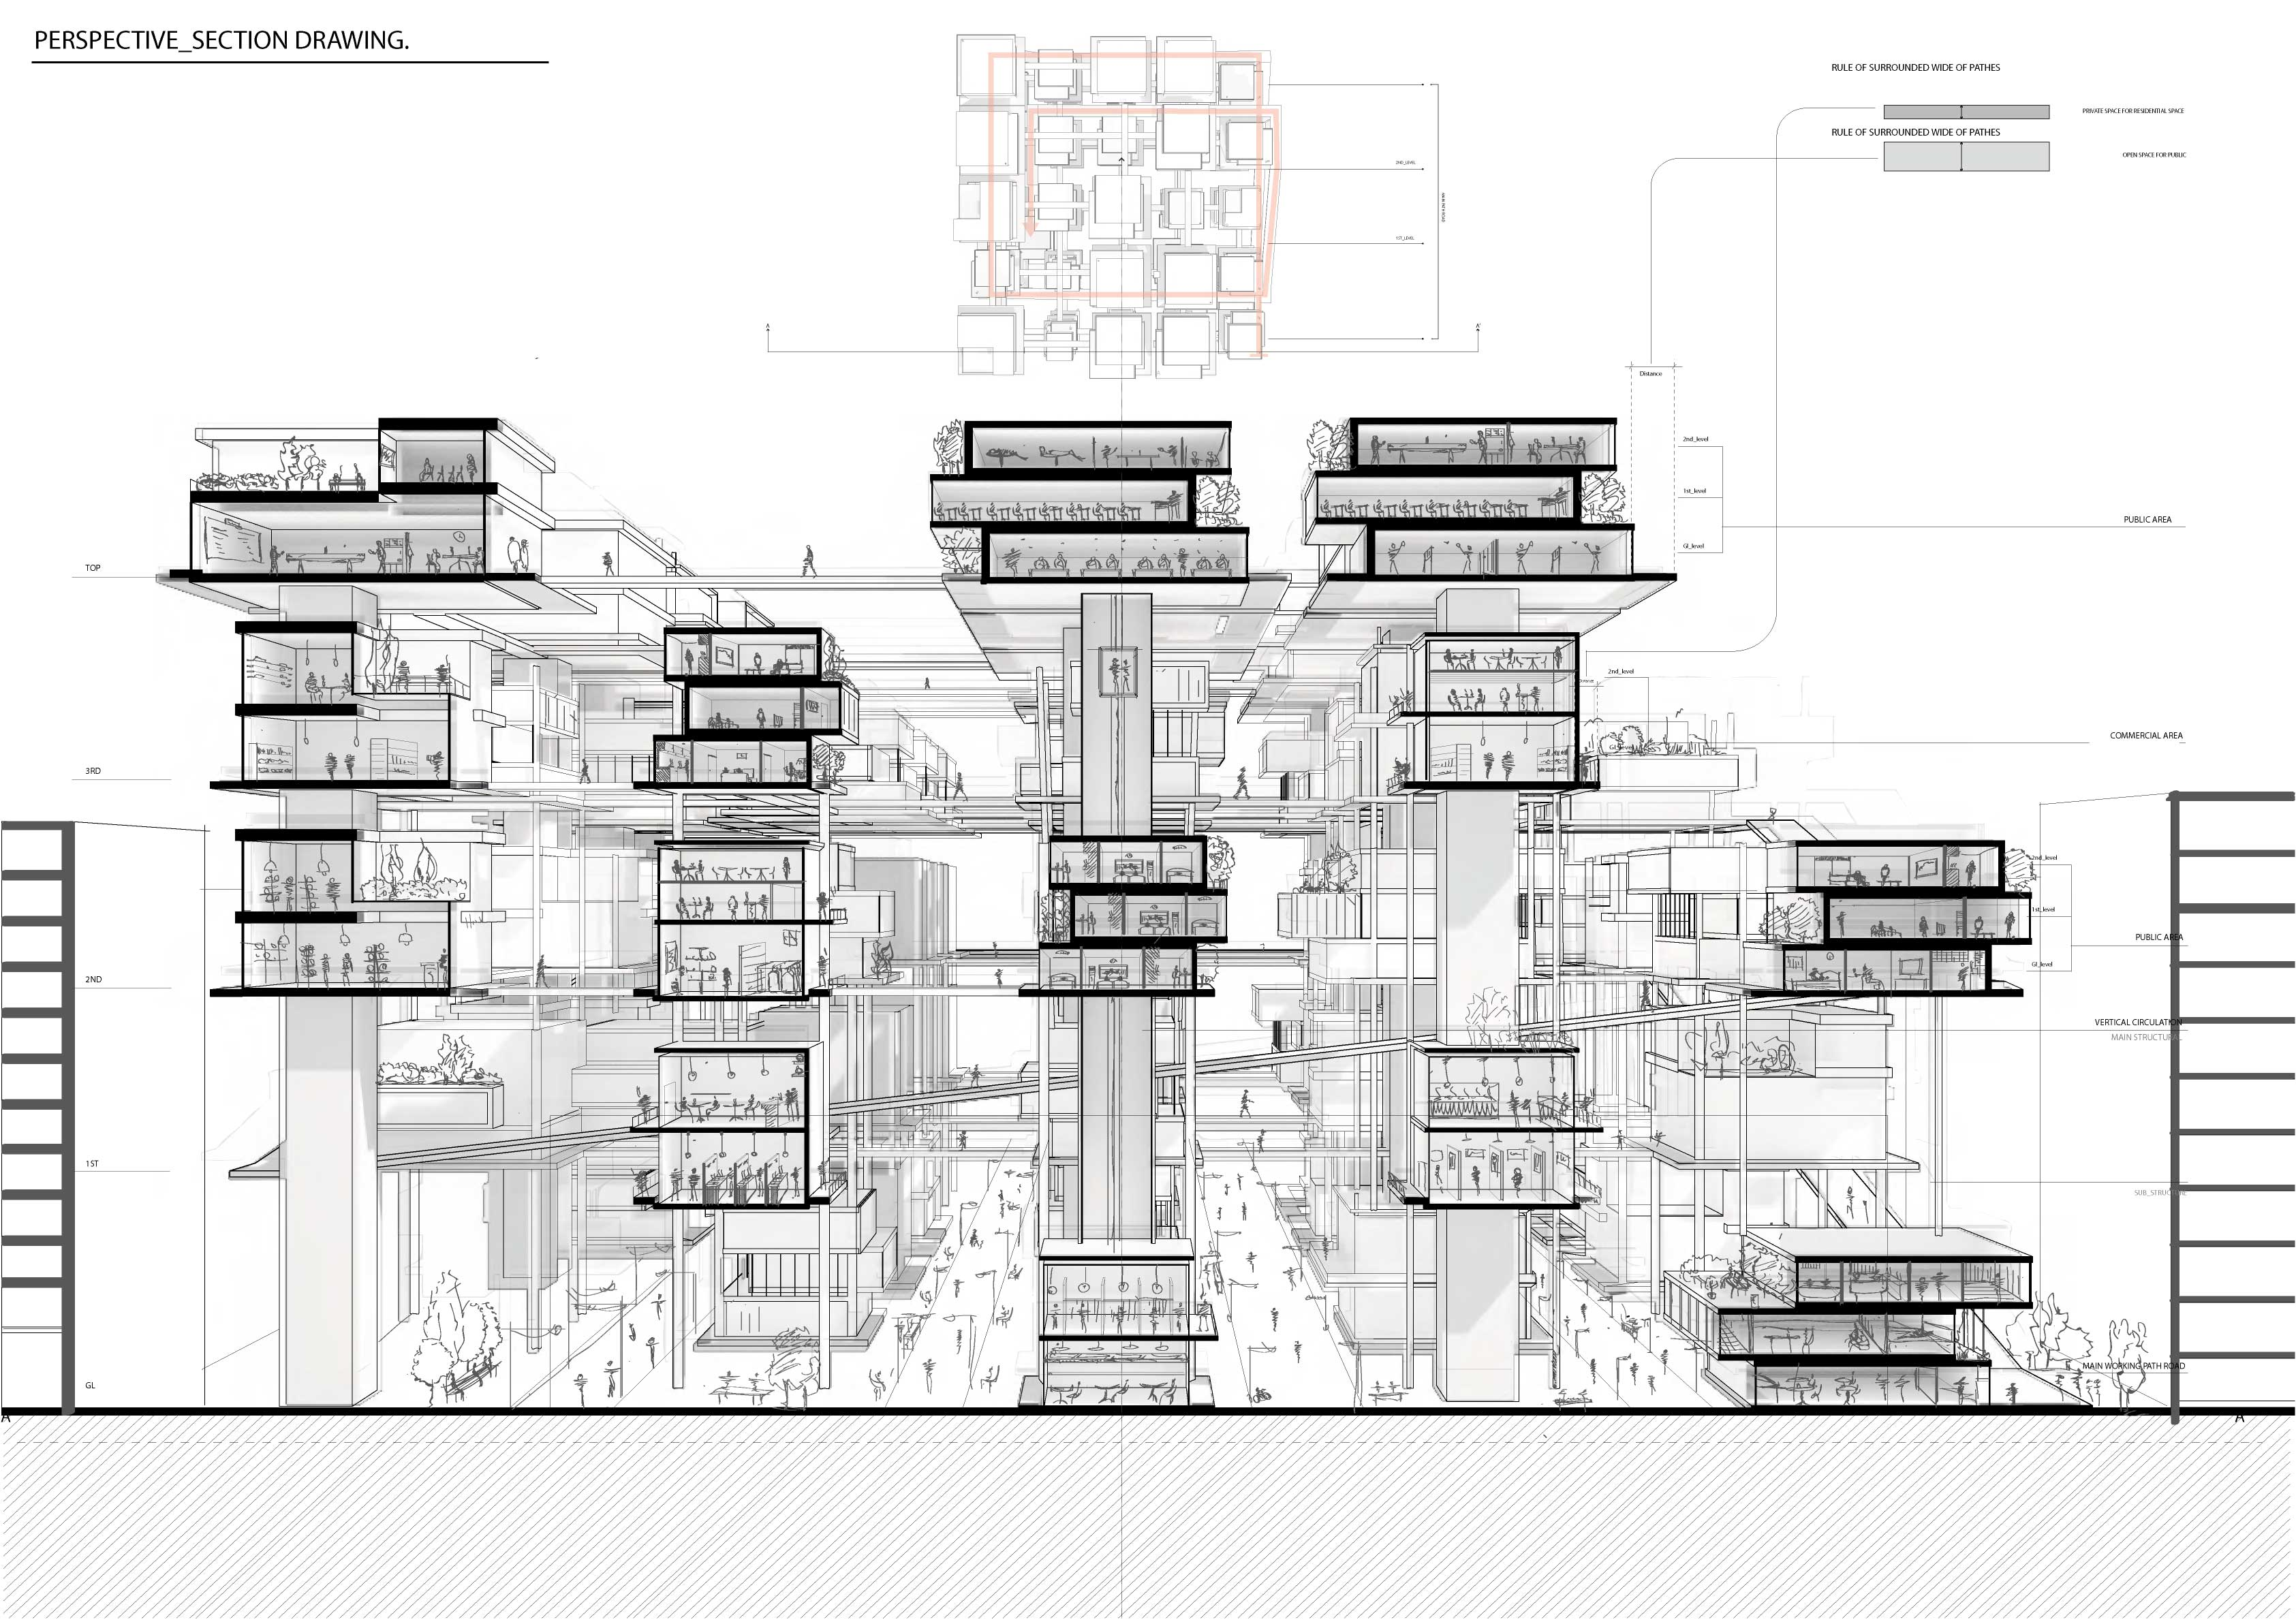 aa school of architecture projects review 2012 - inter 6